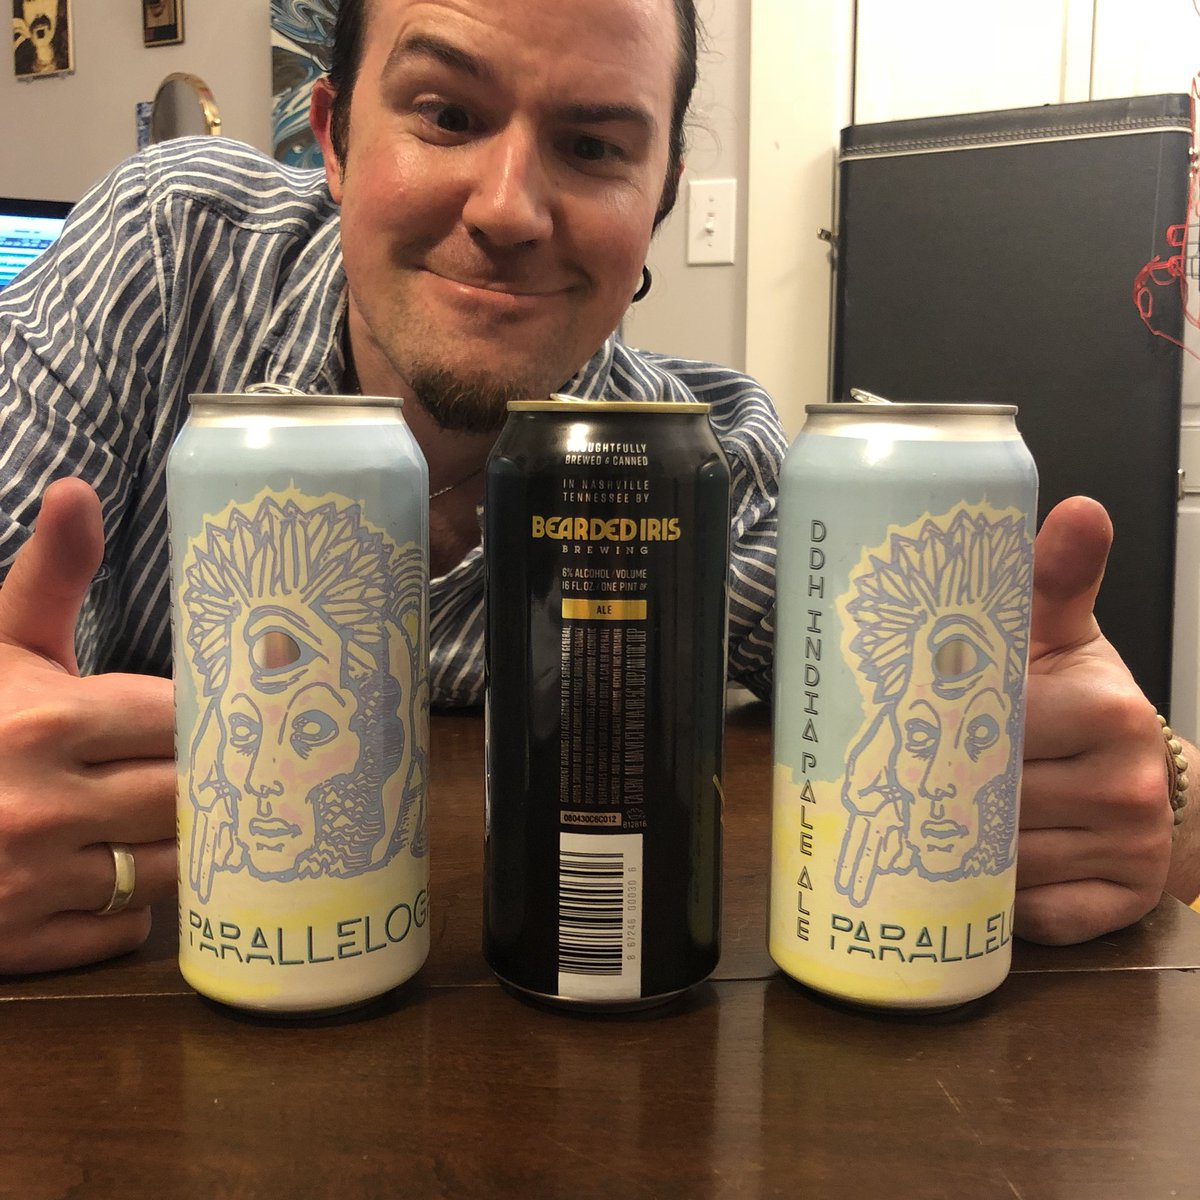 Our drink lineup for The Hills Have Eyes episode: @NewgrassBrewing Parallelograms @beardedirisbrew Homestyle IPA Special thanks to Nick Schotte of Newgrass for hooking us up with some free Newgrass beers. #horror #horrorfan #horrorfans #beer #beerreviews<br>http://pic.twitter.com/f0jivbr4iq